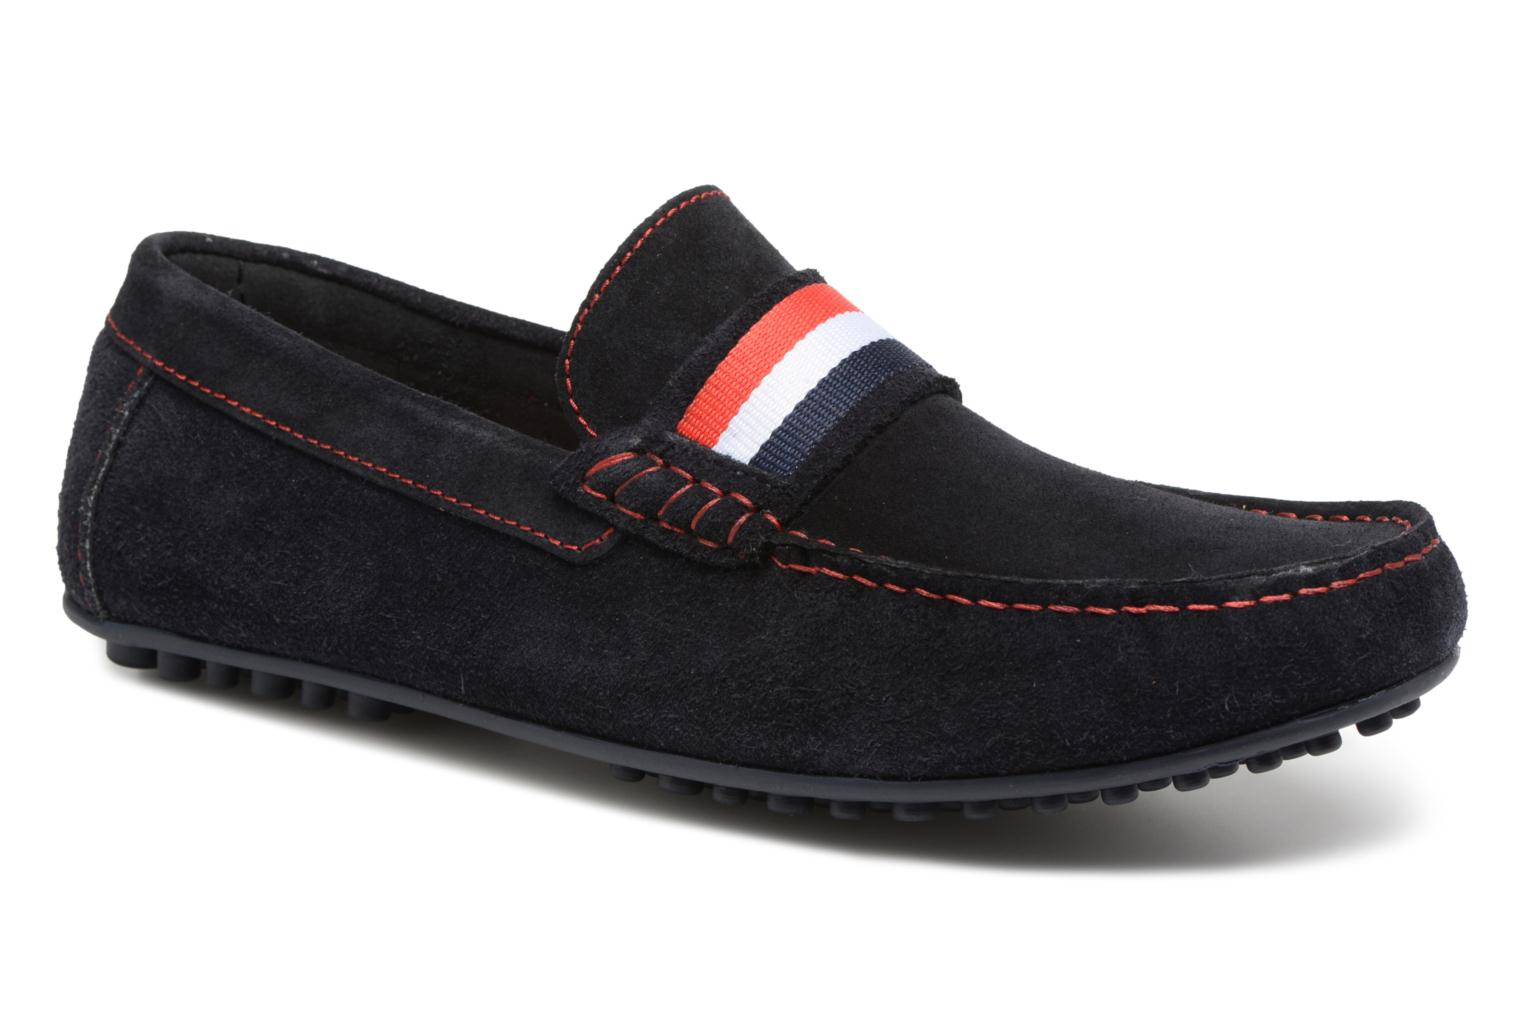 Marques Chaussure homme Marvin&Co homme Spat Marine